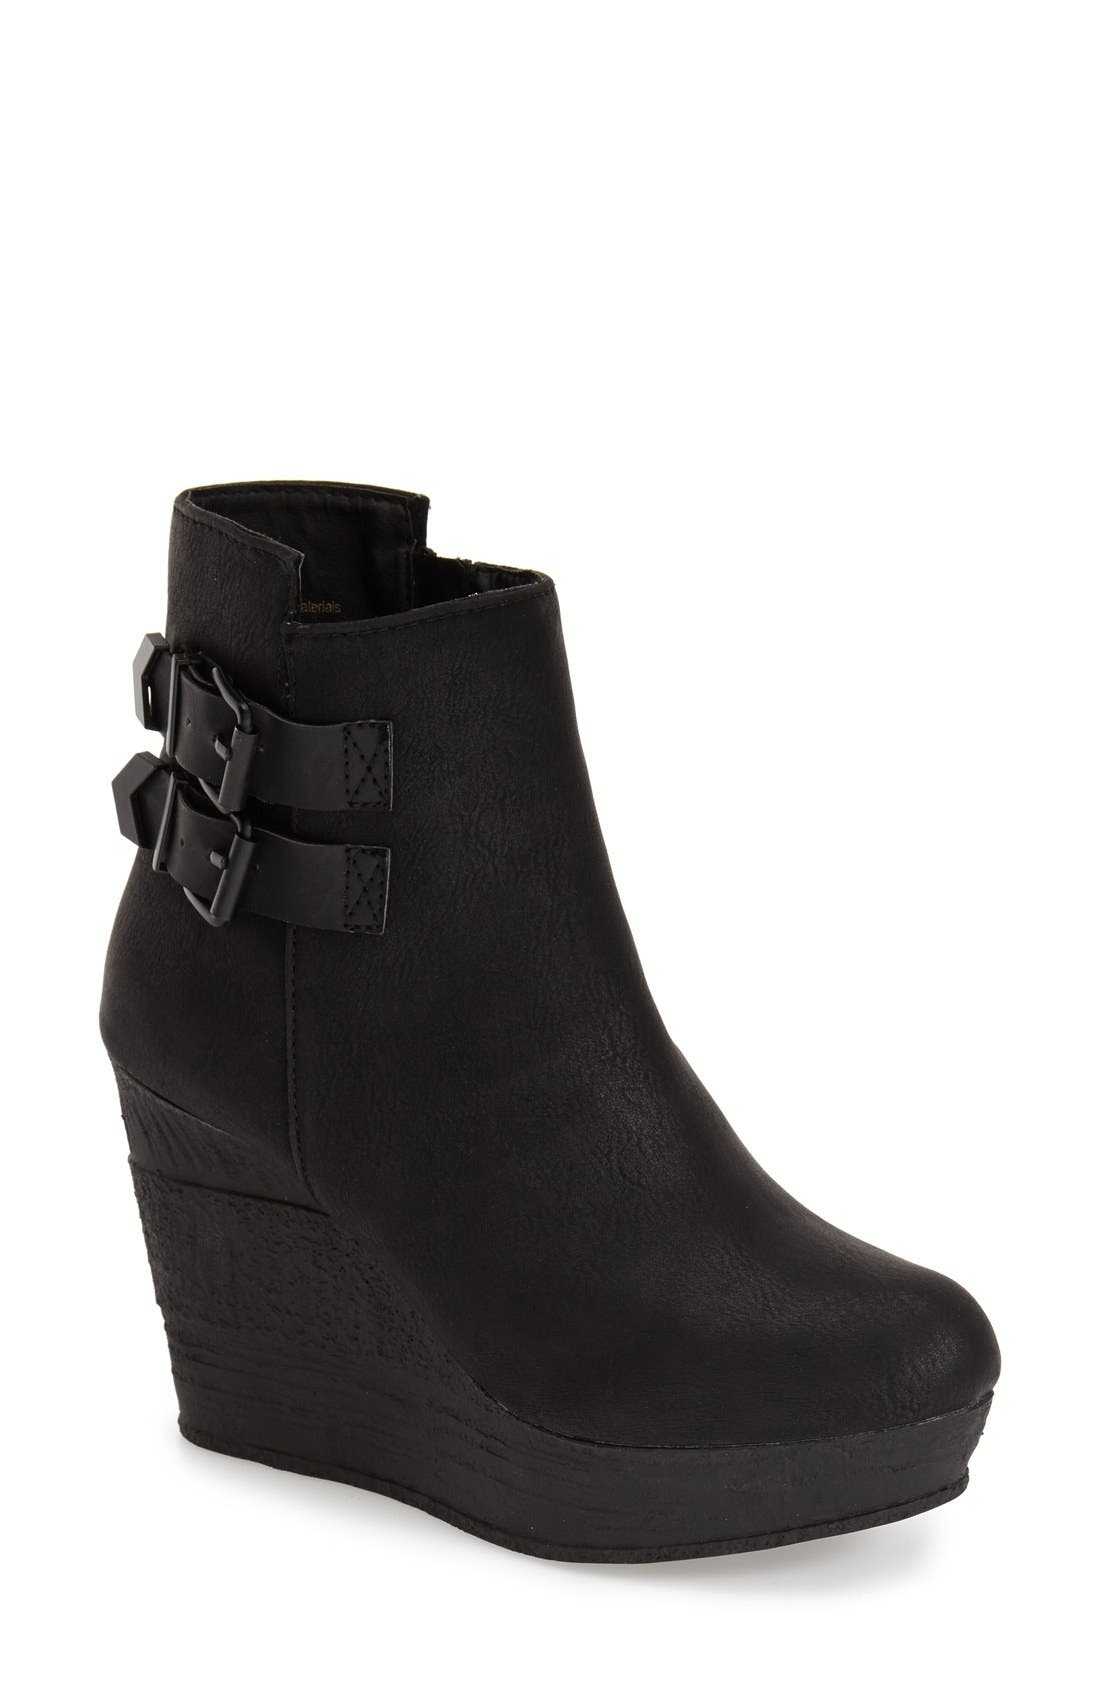 Alternate Image 1 Selected - Sbicca 'Woodway' Wedge Bootie (Women)